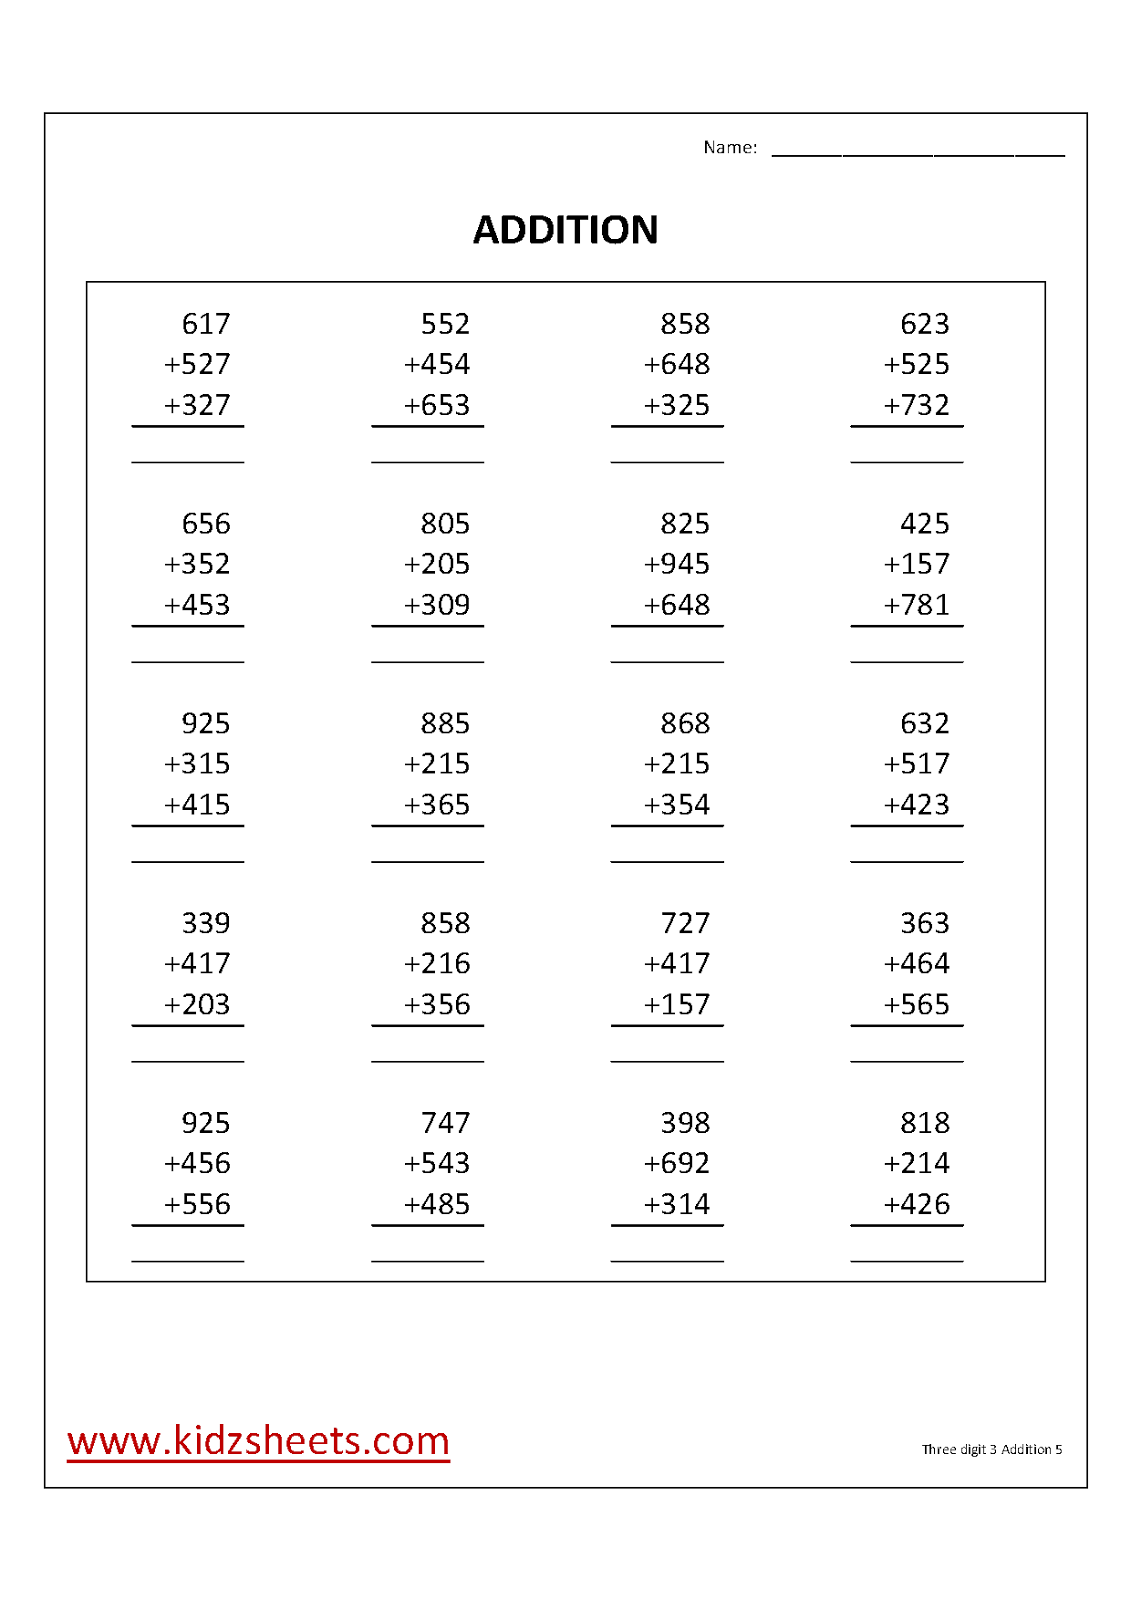 medium resolution of Kidz Worksheets: Third Grade Three digit 3 Number Addition Worksheet5